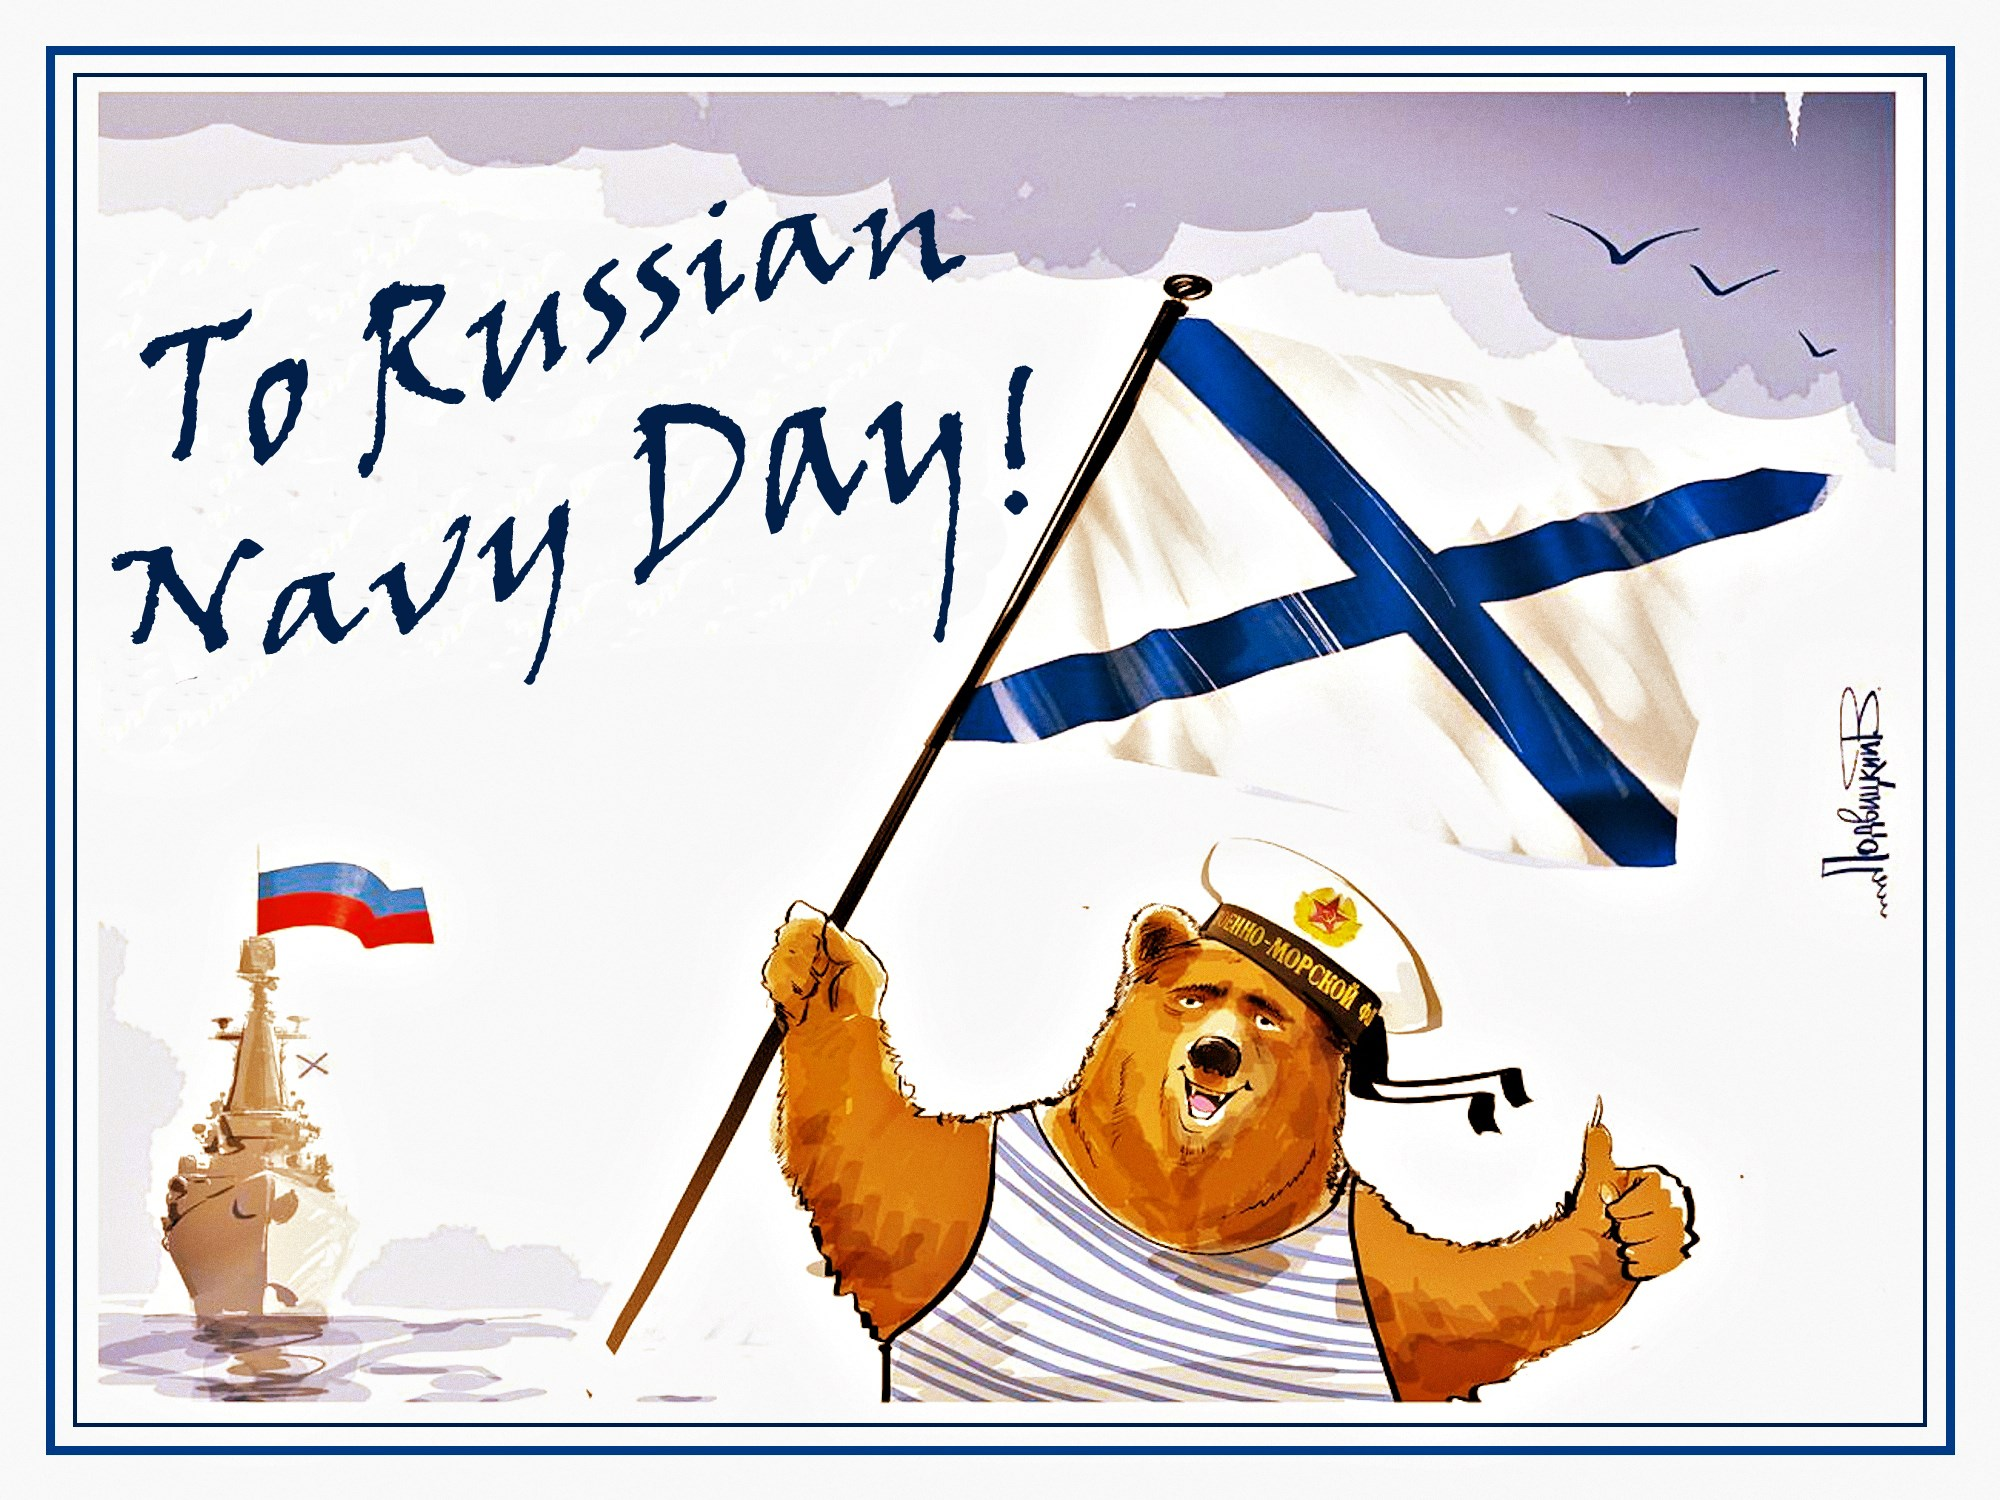 00 Vitaly Podvitsky. To Russian Navy Day! 2015